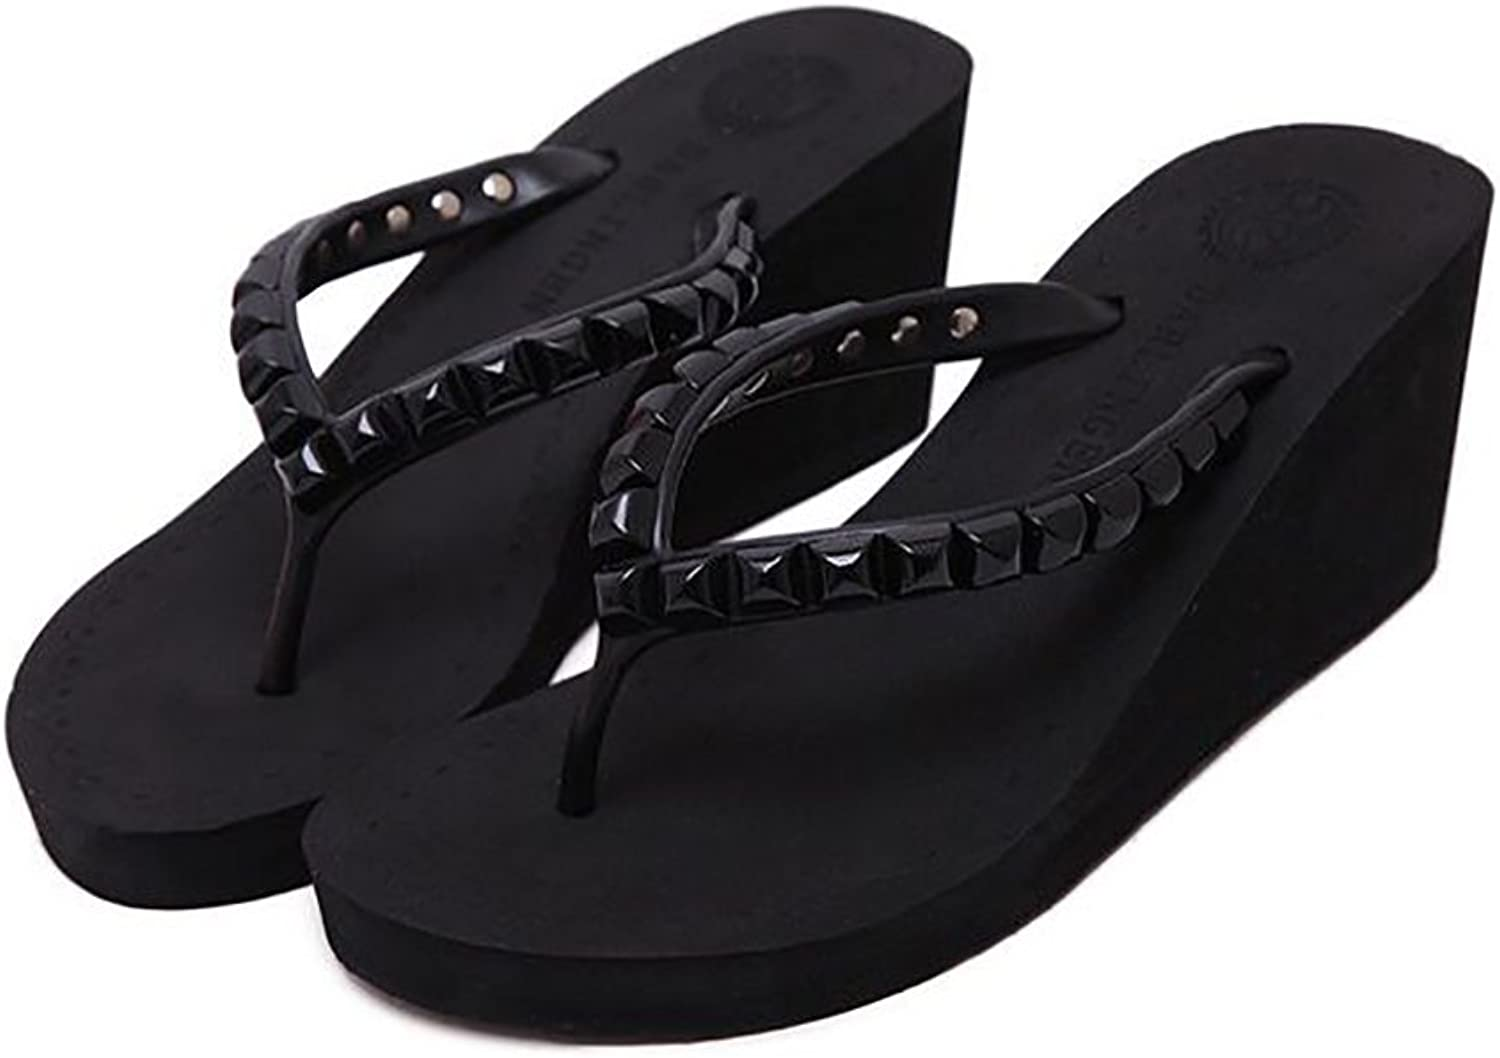 Comfortable Breathable Flip Flops Sandals Women's Summer Beach Rivets Wedge shoes,Black,38